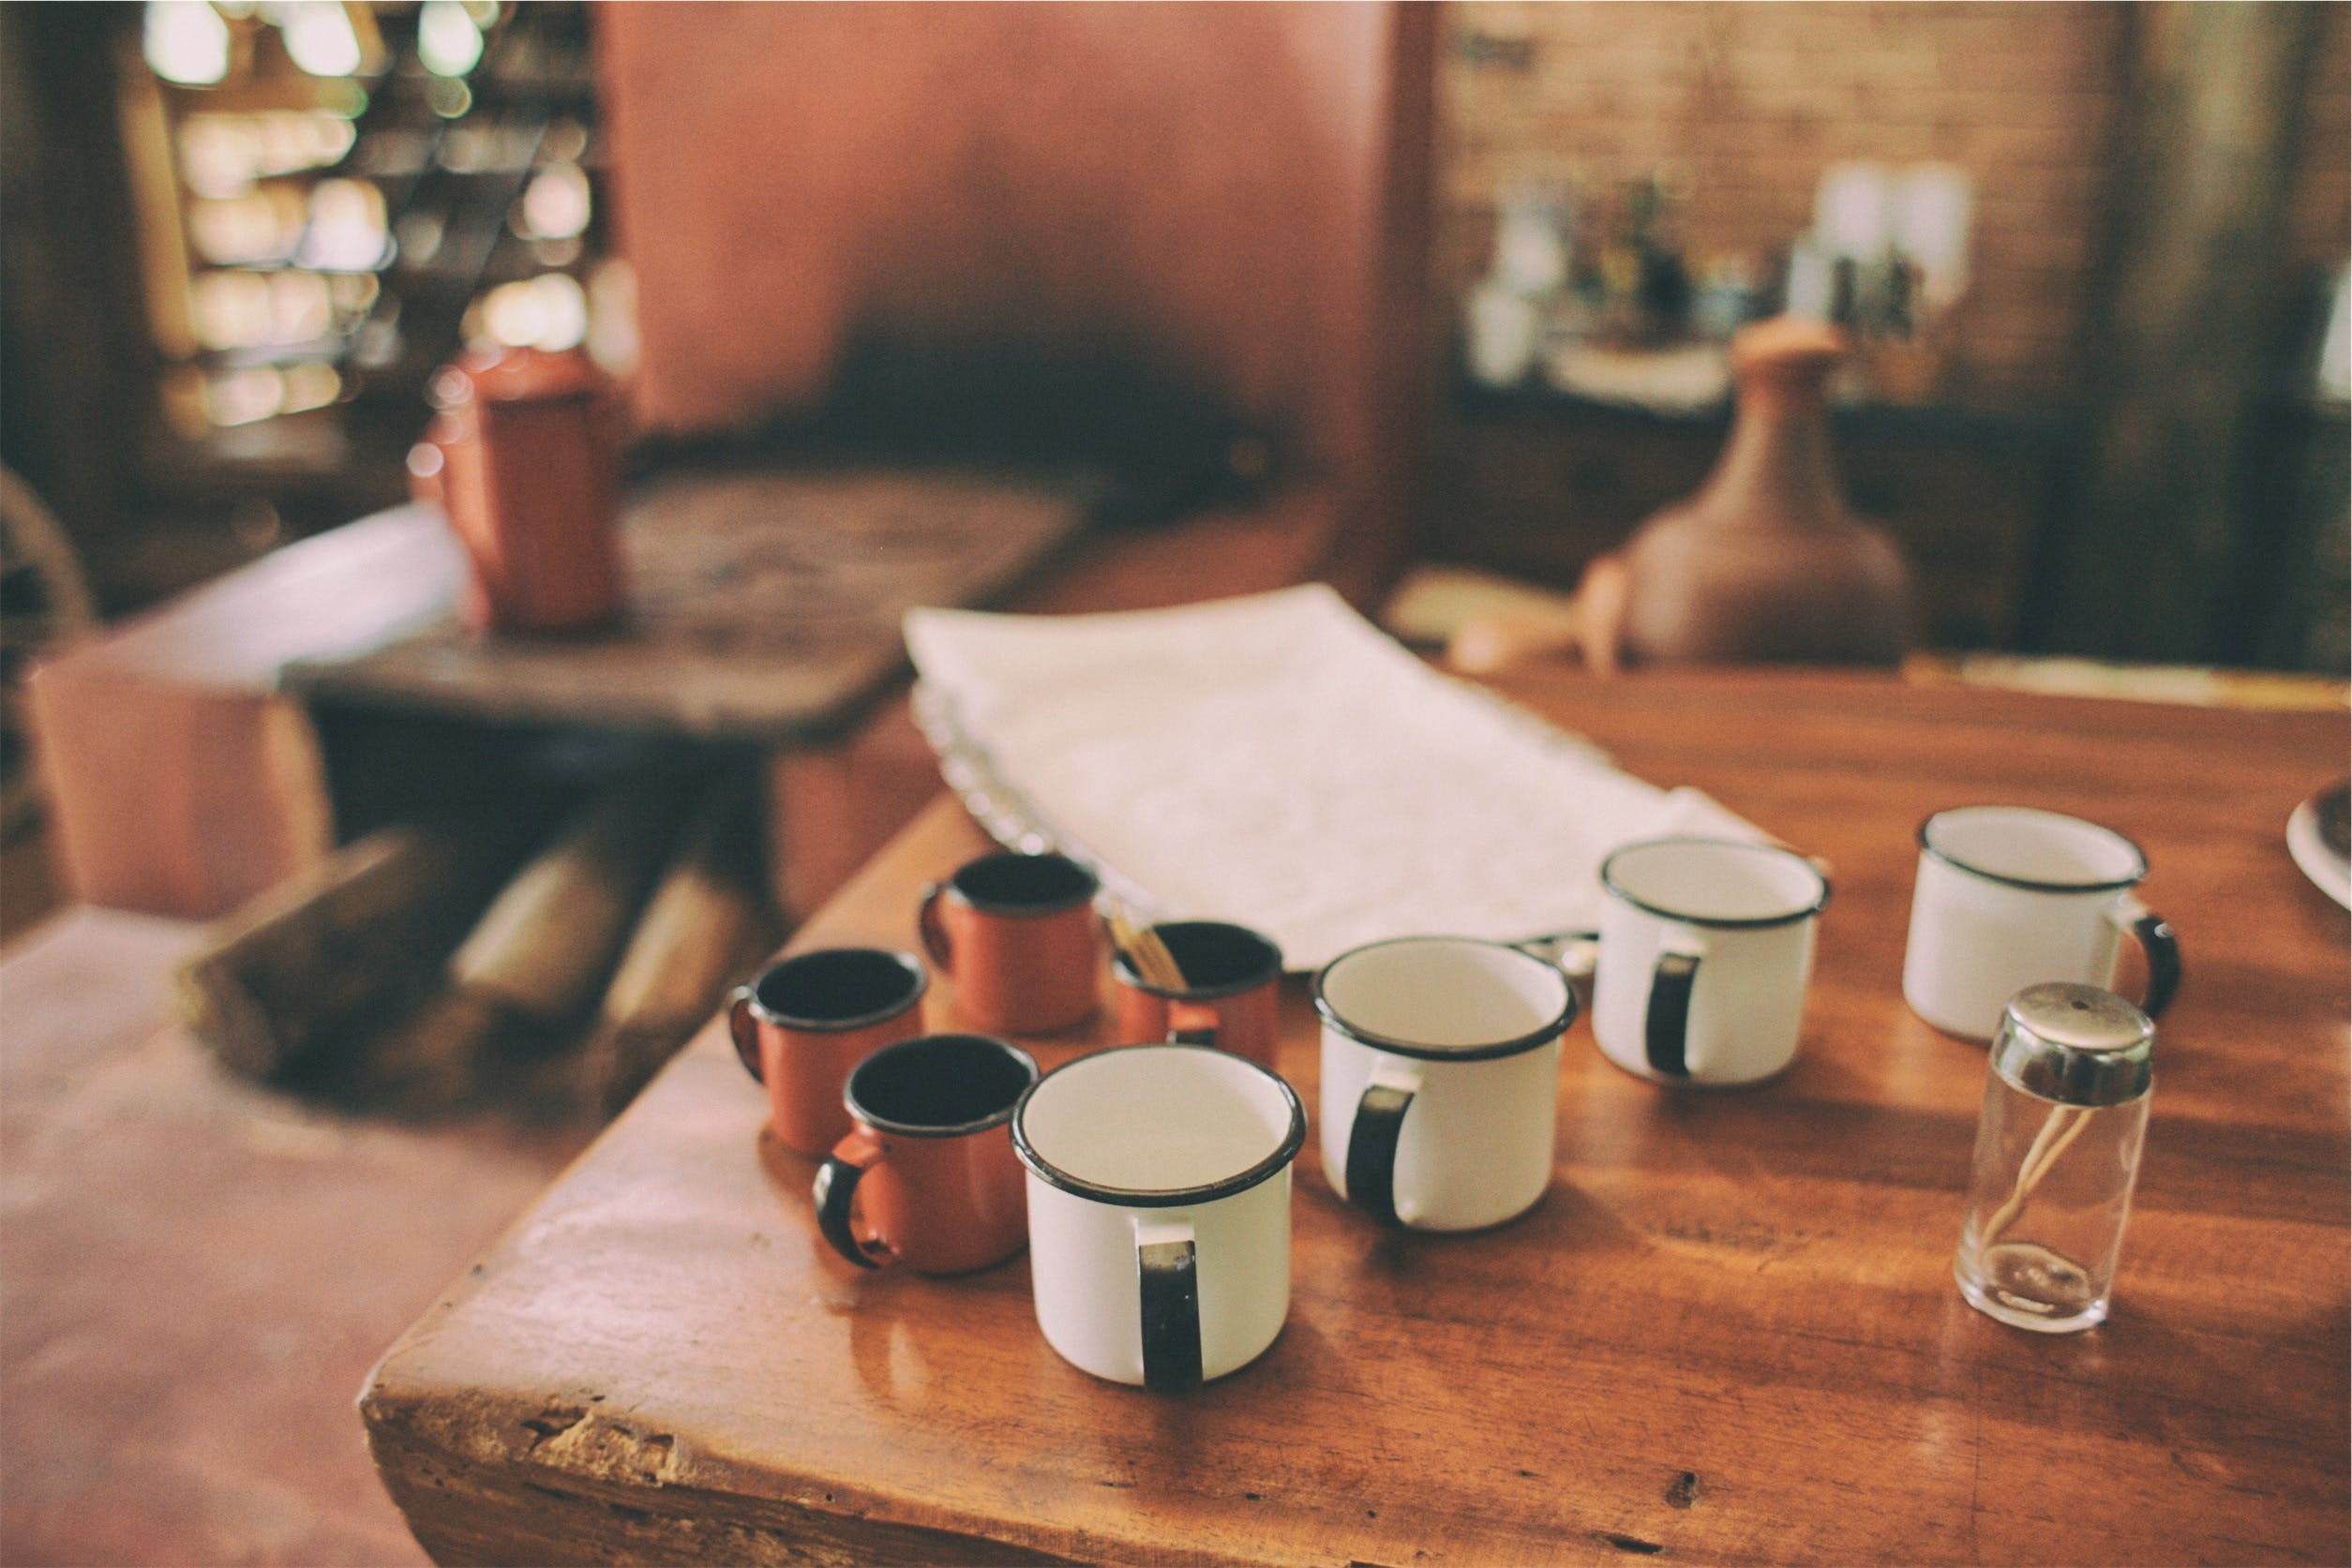 Free stock photo of wood, table, cups, mugs